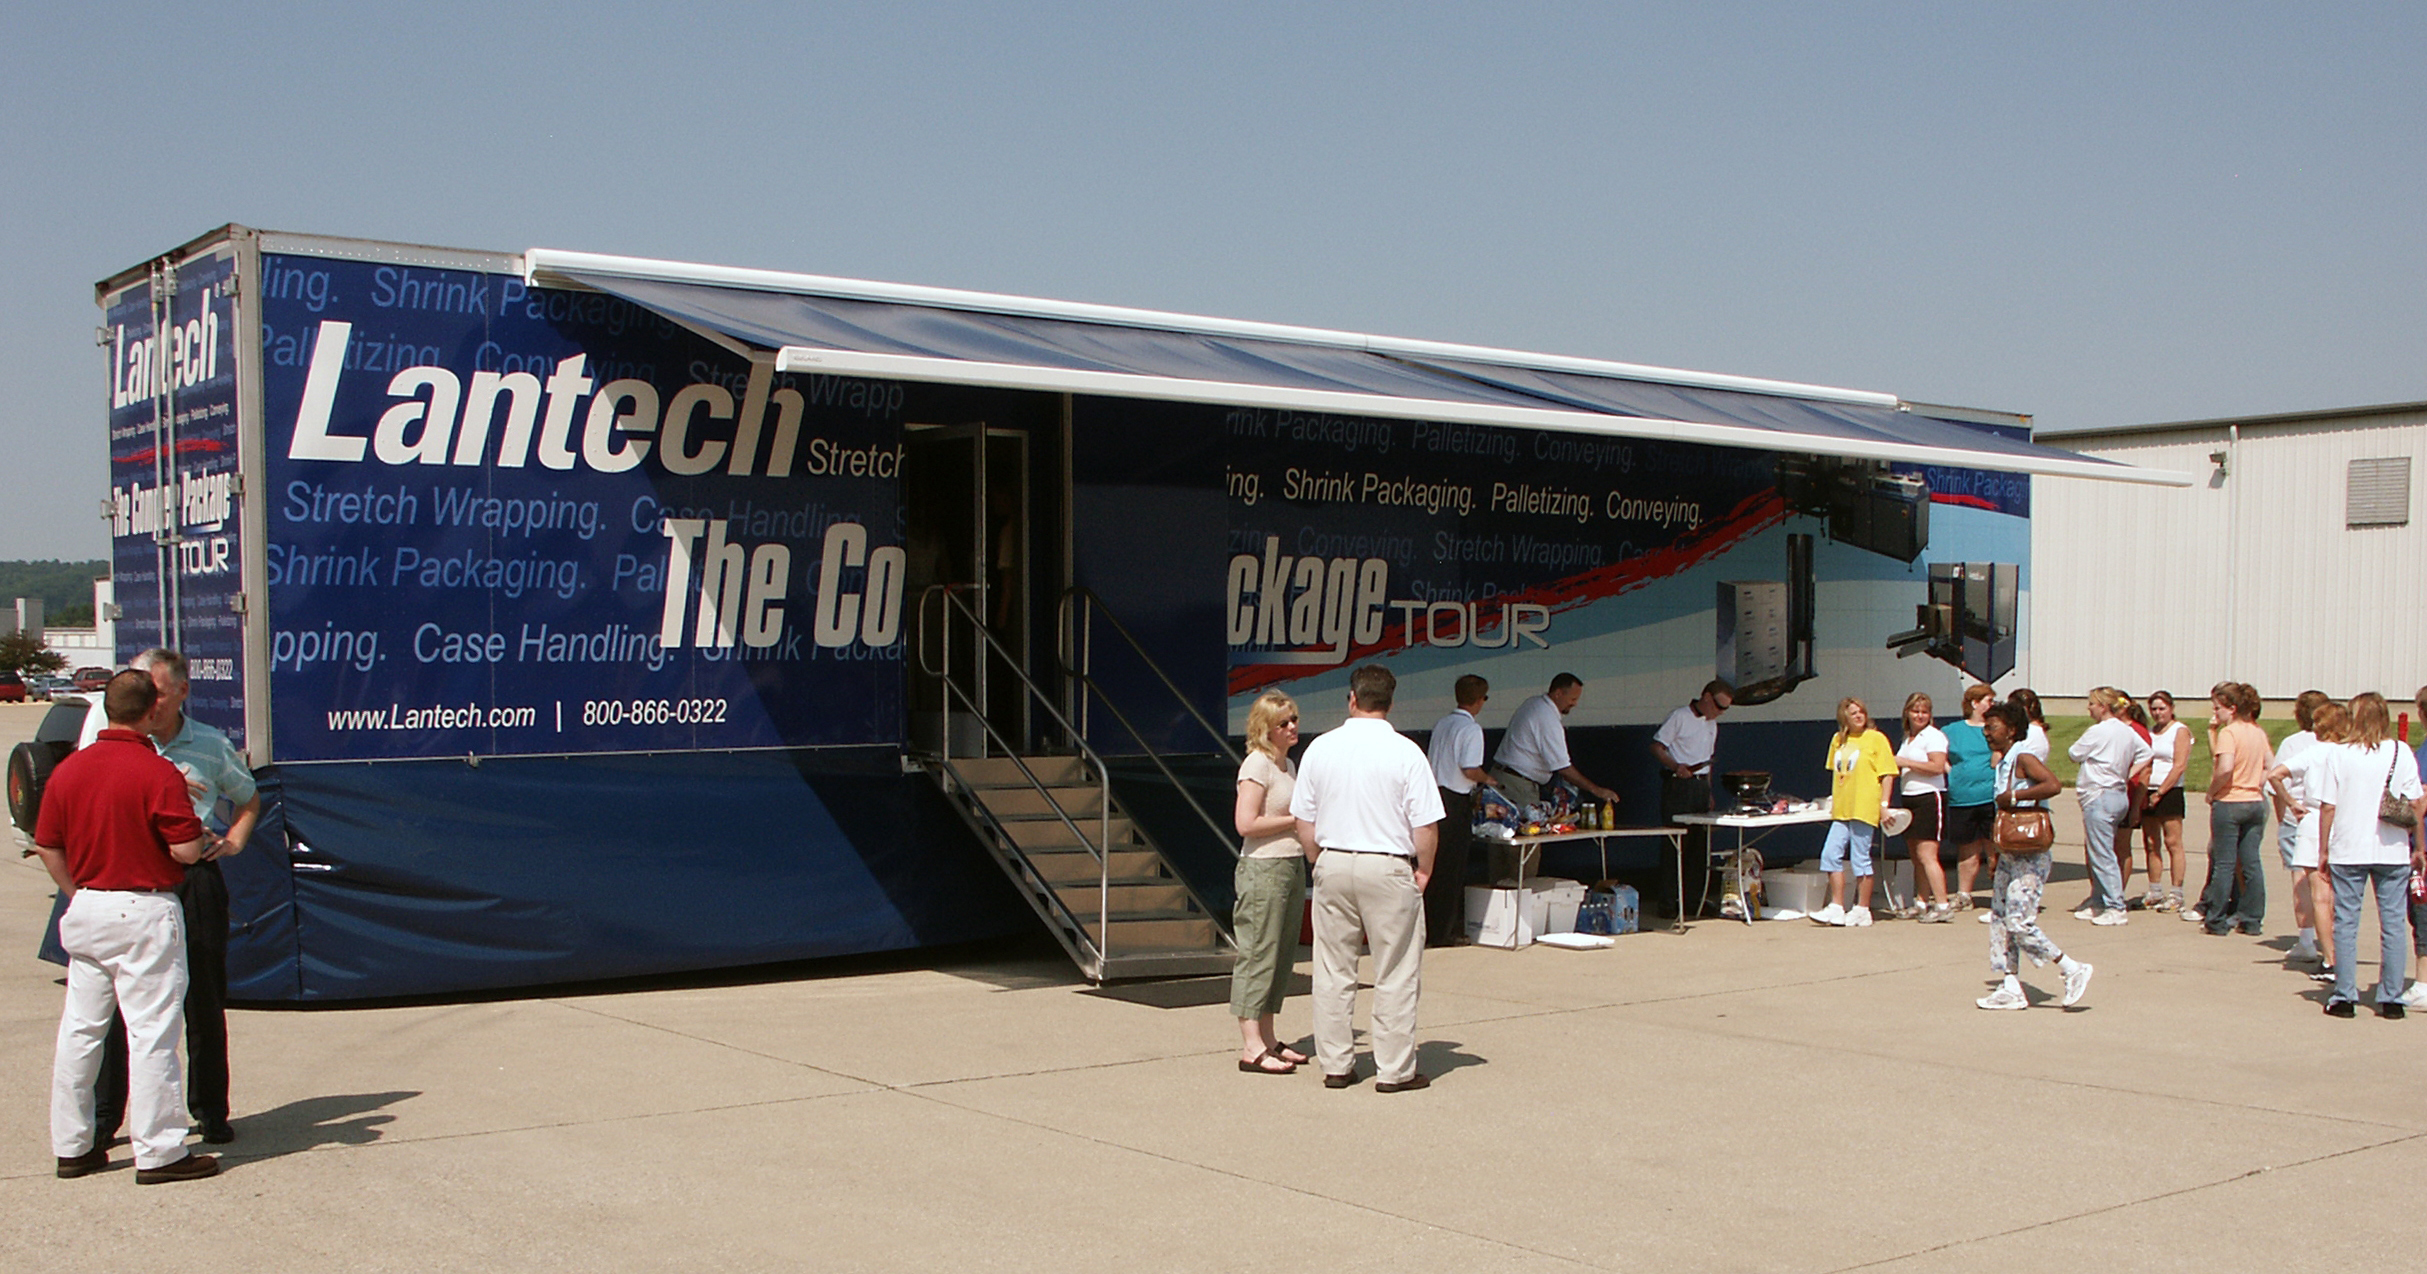 Kentucky trailer has been a good and efficient supplier for truck mounted mammography systems with mediserv in the kingdom of saudi arabia and the